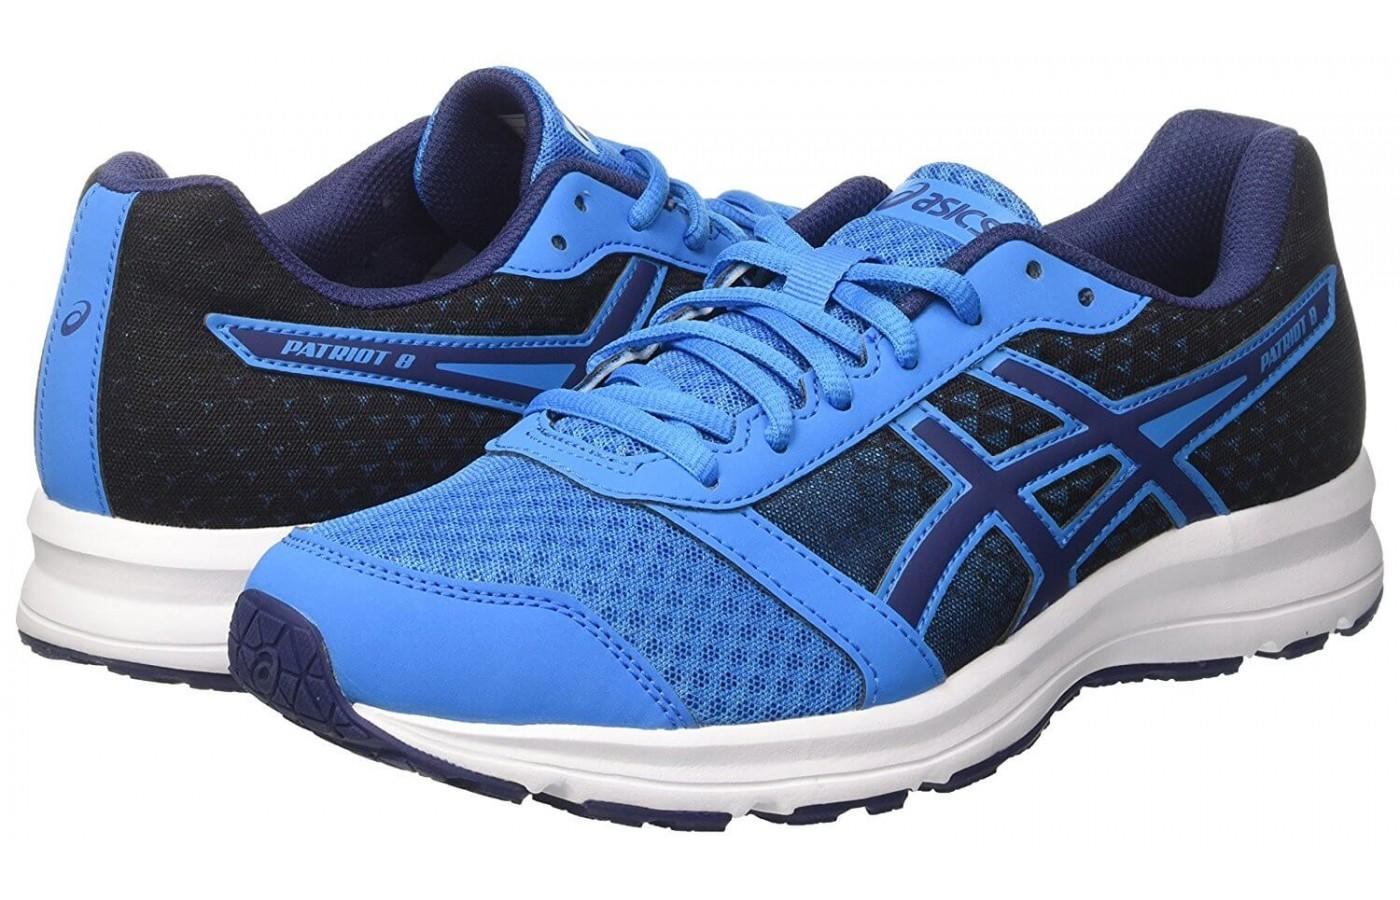 a pair of the comfortable ASICS Patriot 8